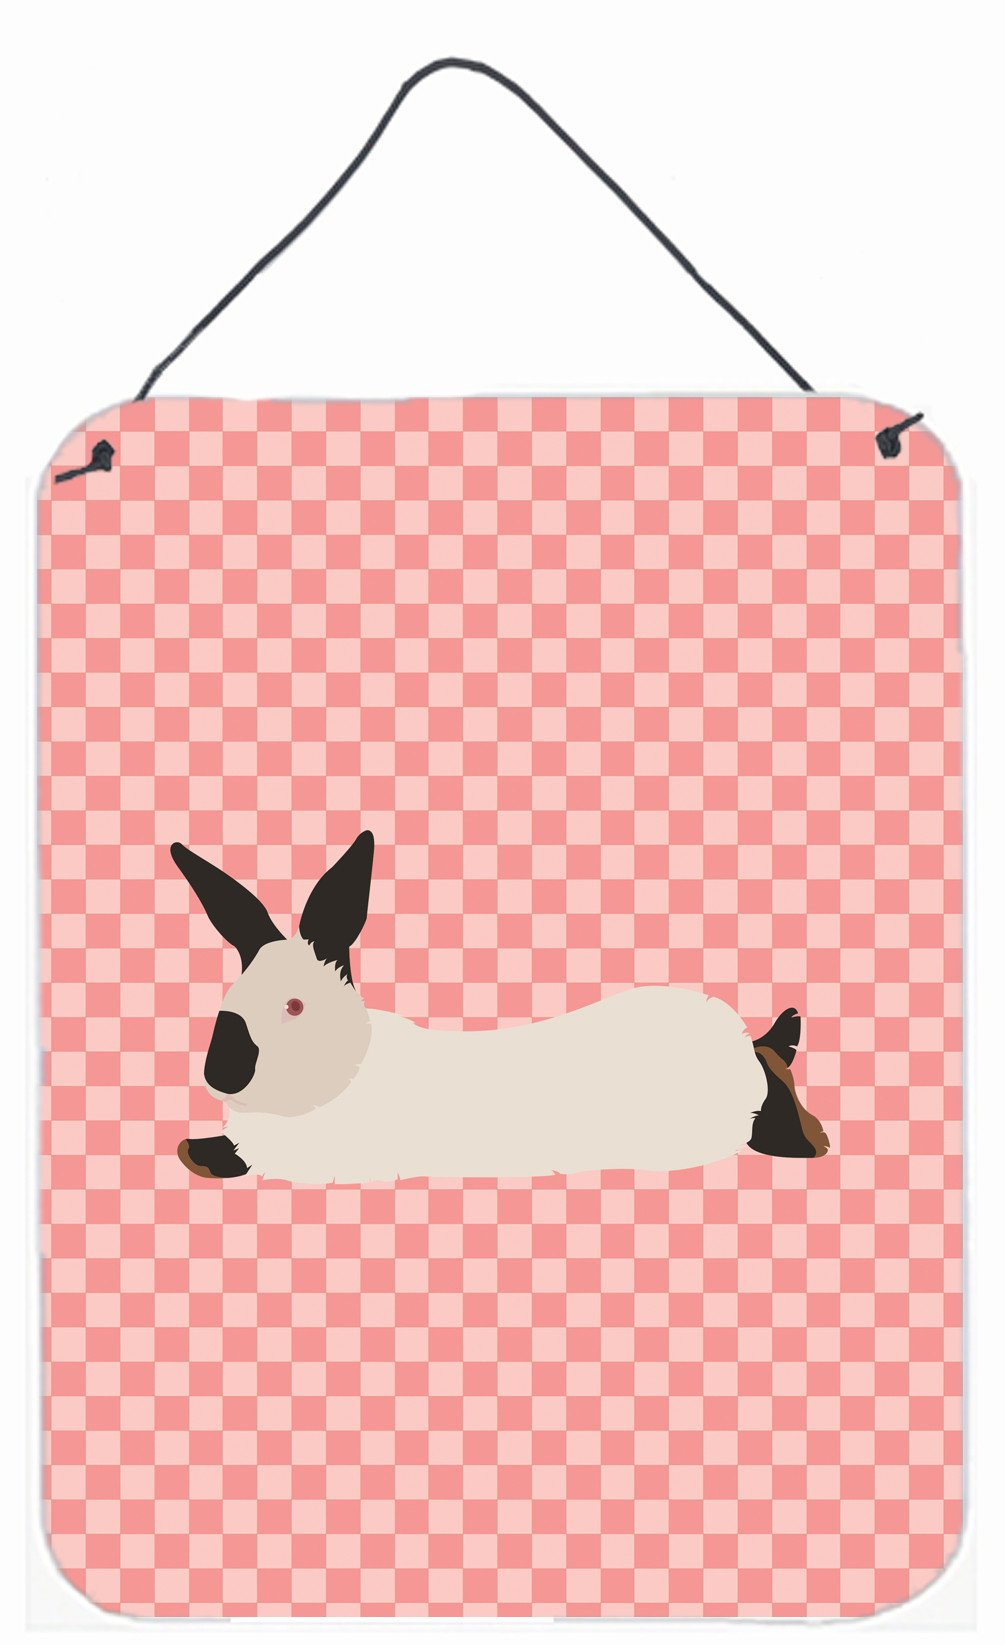 California White Rabbit Pink Check Wall or Door Hanging Prints BB7967DS1216 by Caroline's Treasures